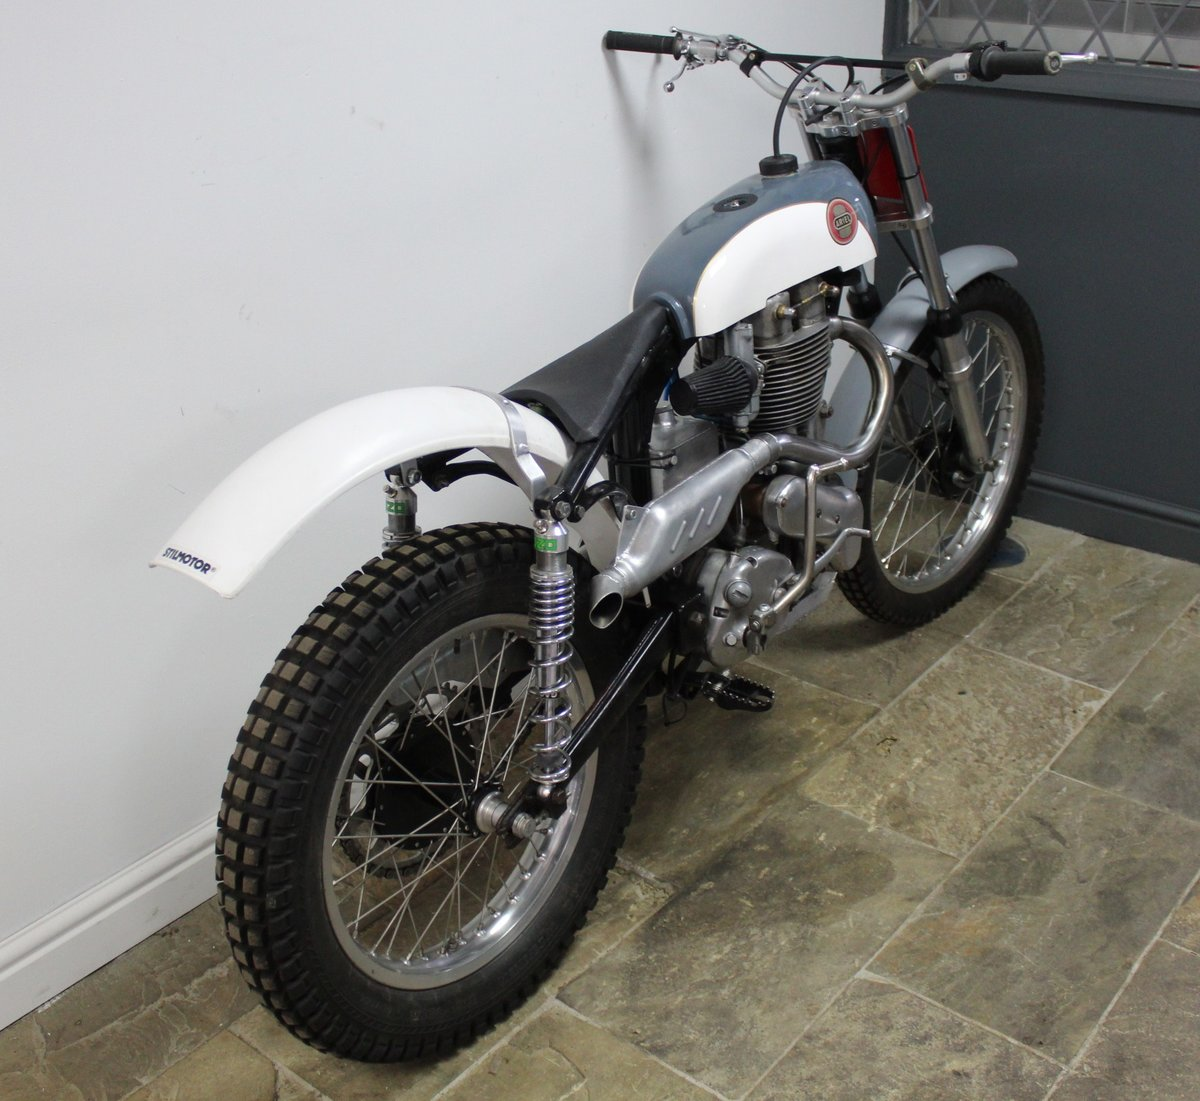 1958 Ariel HT 500 trials, Full alloy HT engine For Sale (picture 3 of 6)